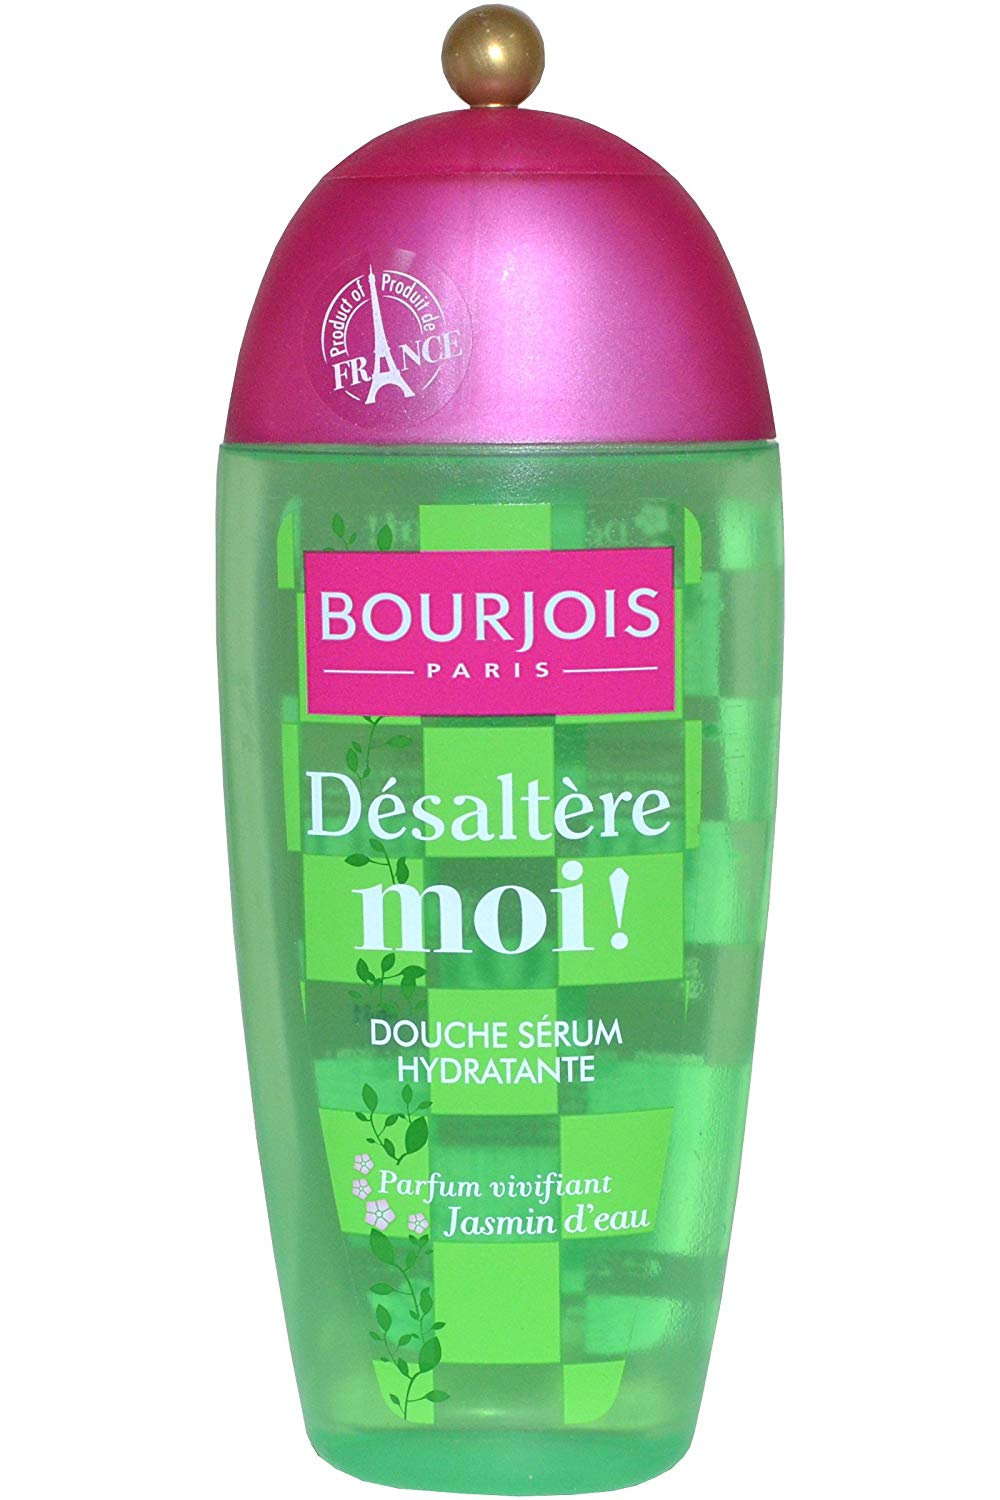 BOURJOIS PARIS DESALTERE MOI! SHOWER GEL 250ML